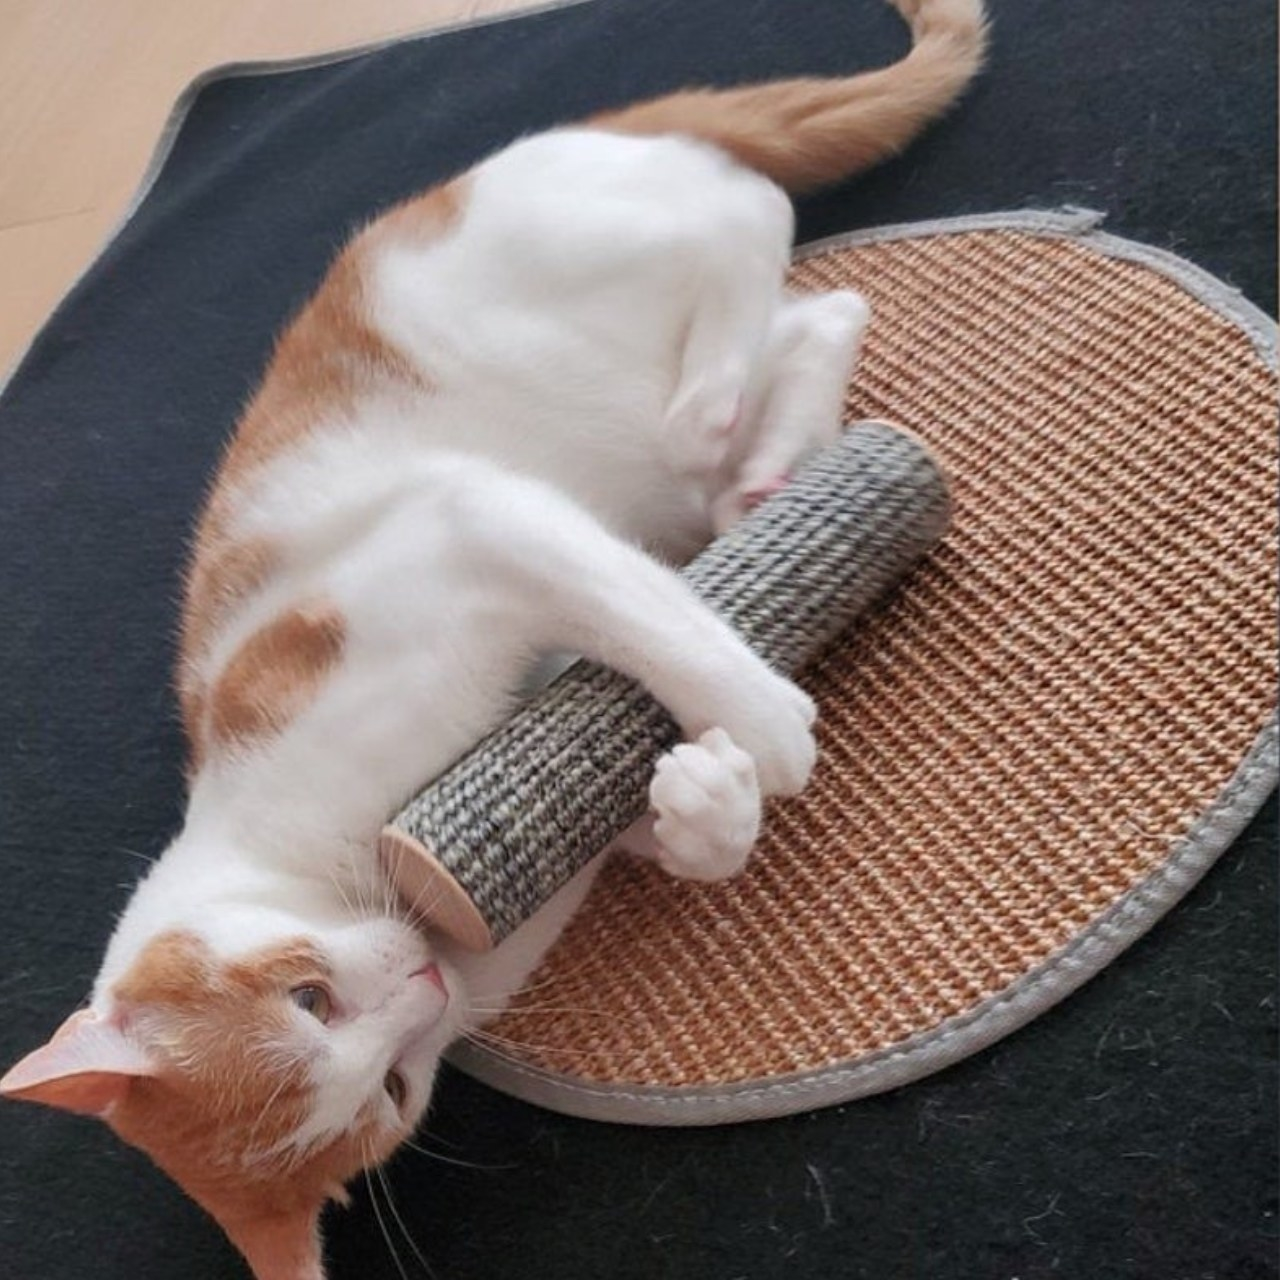 The cat roller toy being held by an orange and white cat